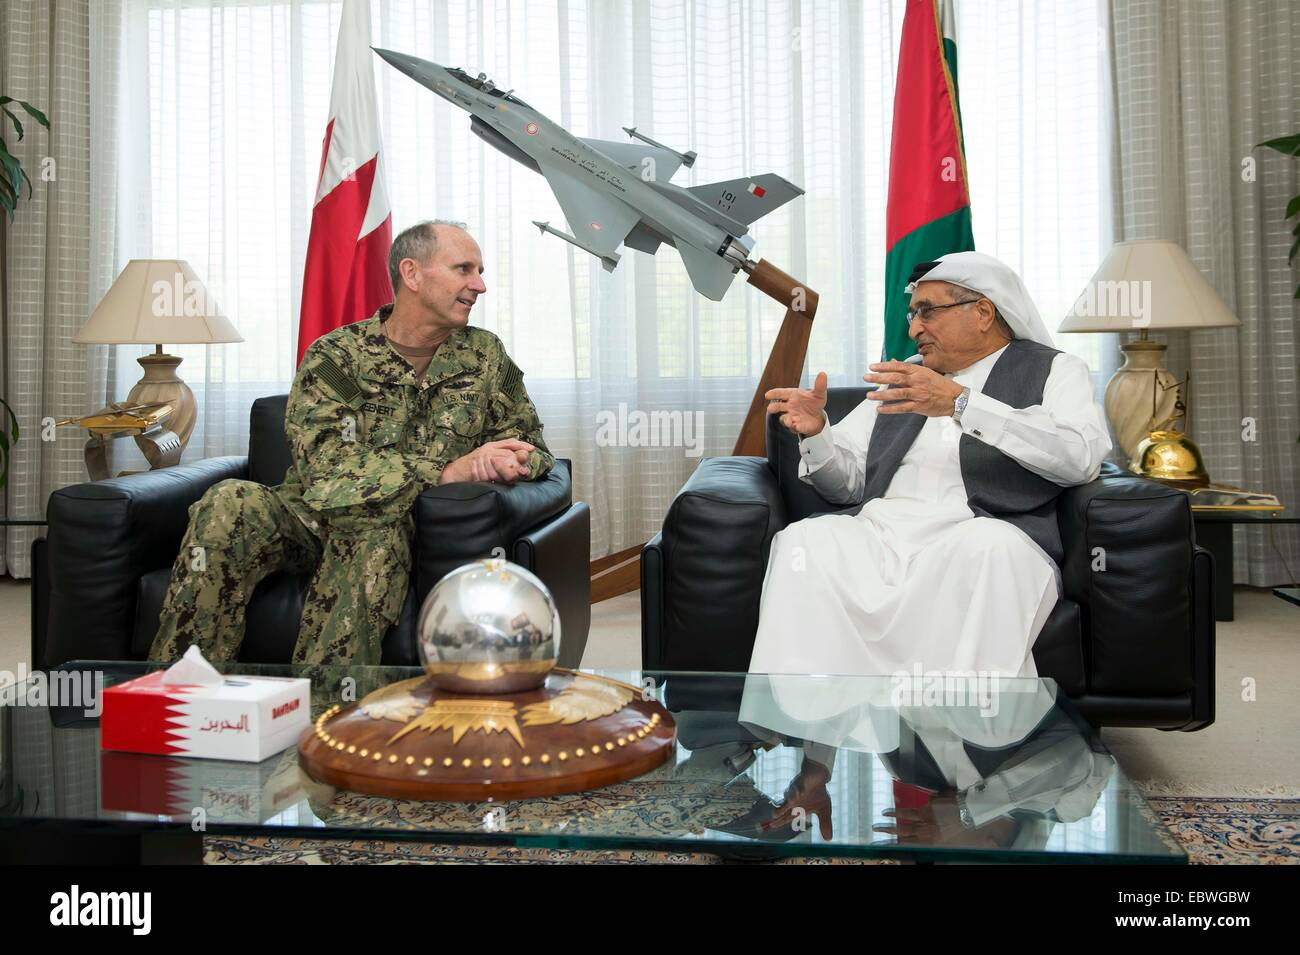 US Chief of Naval Operations Adm. Jonathan Greenert chats with Bahrain Minister of State for Defense Affairs Lt. - Stock Image